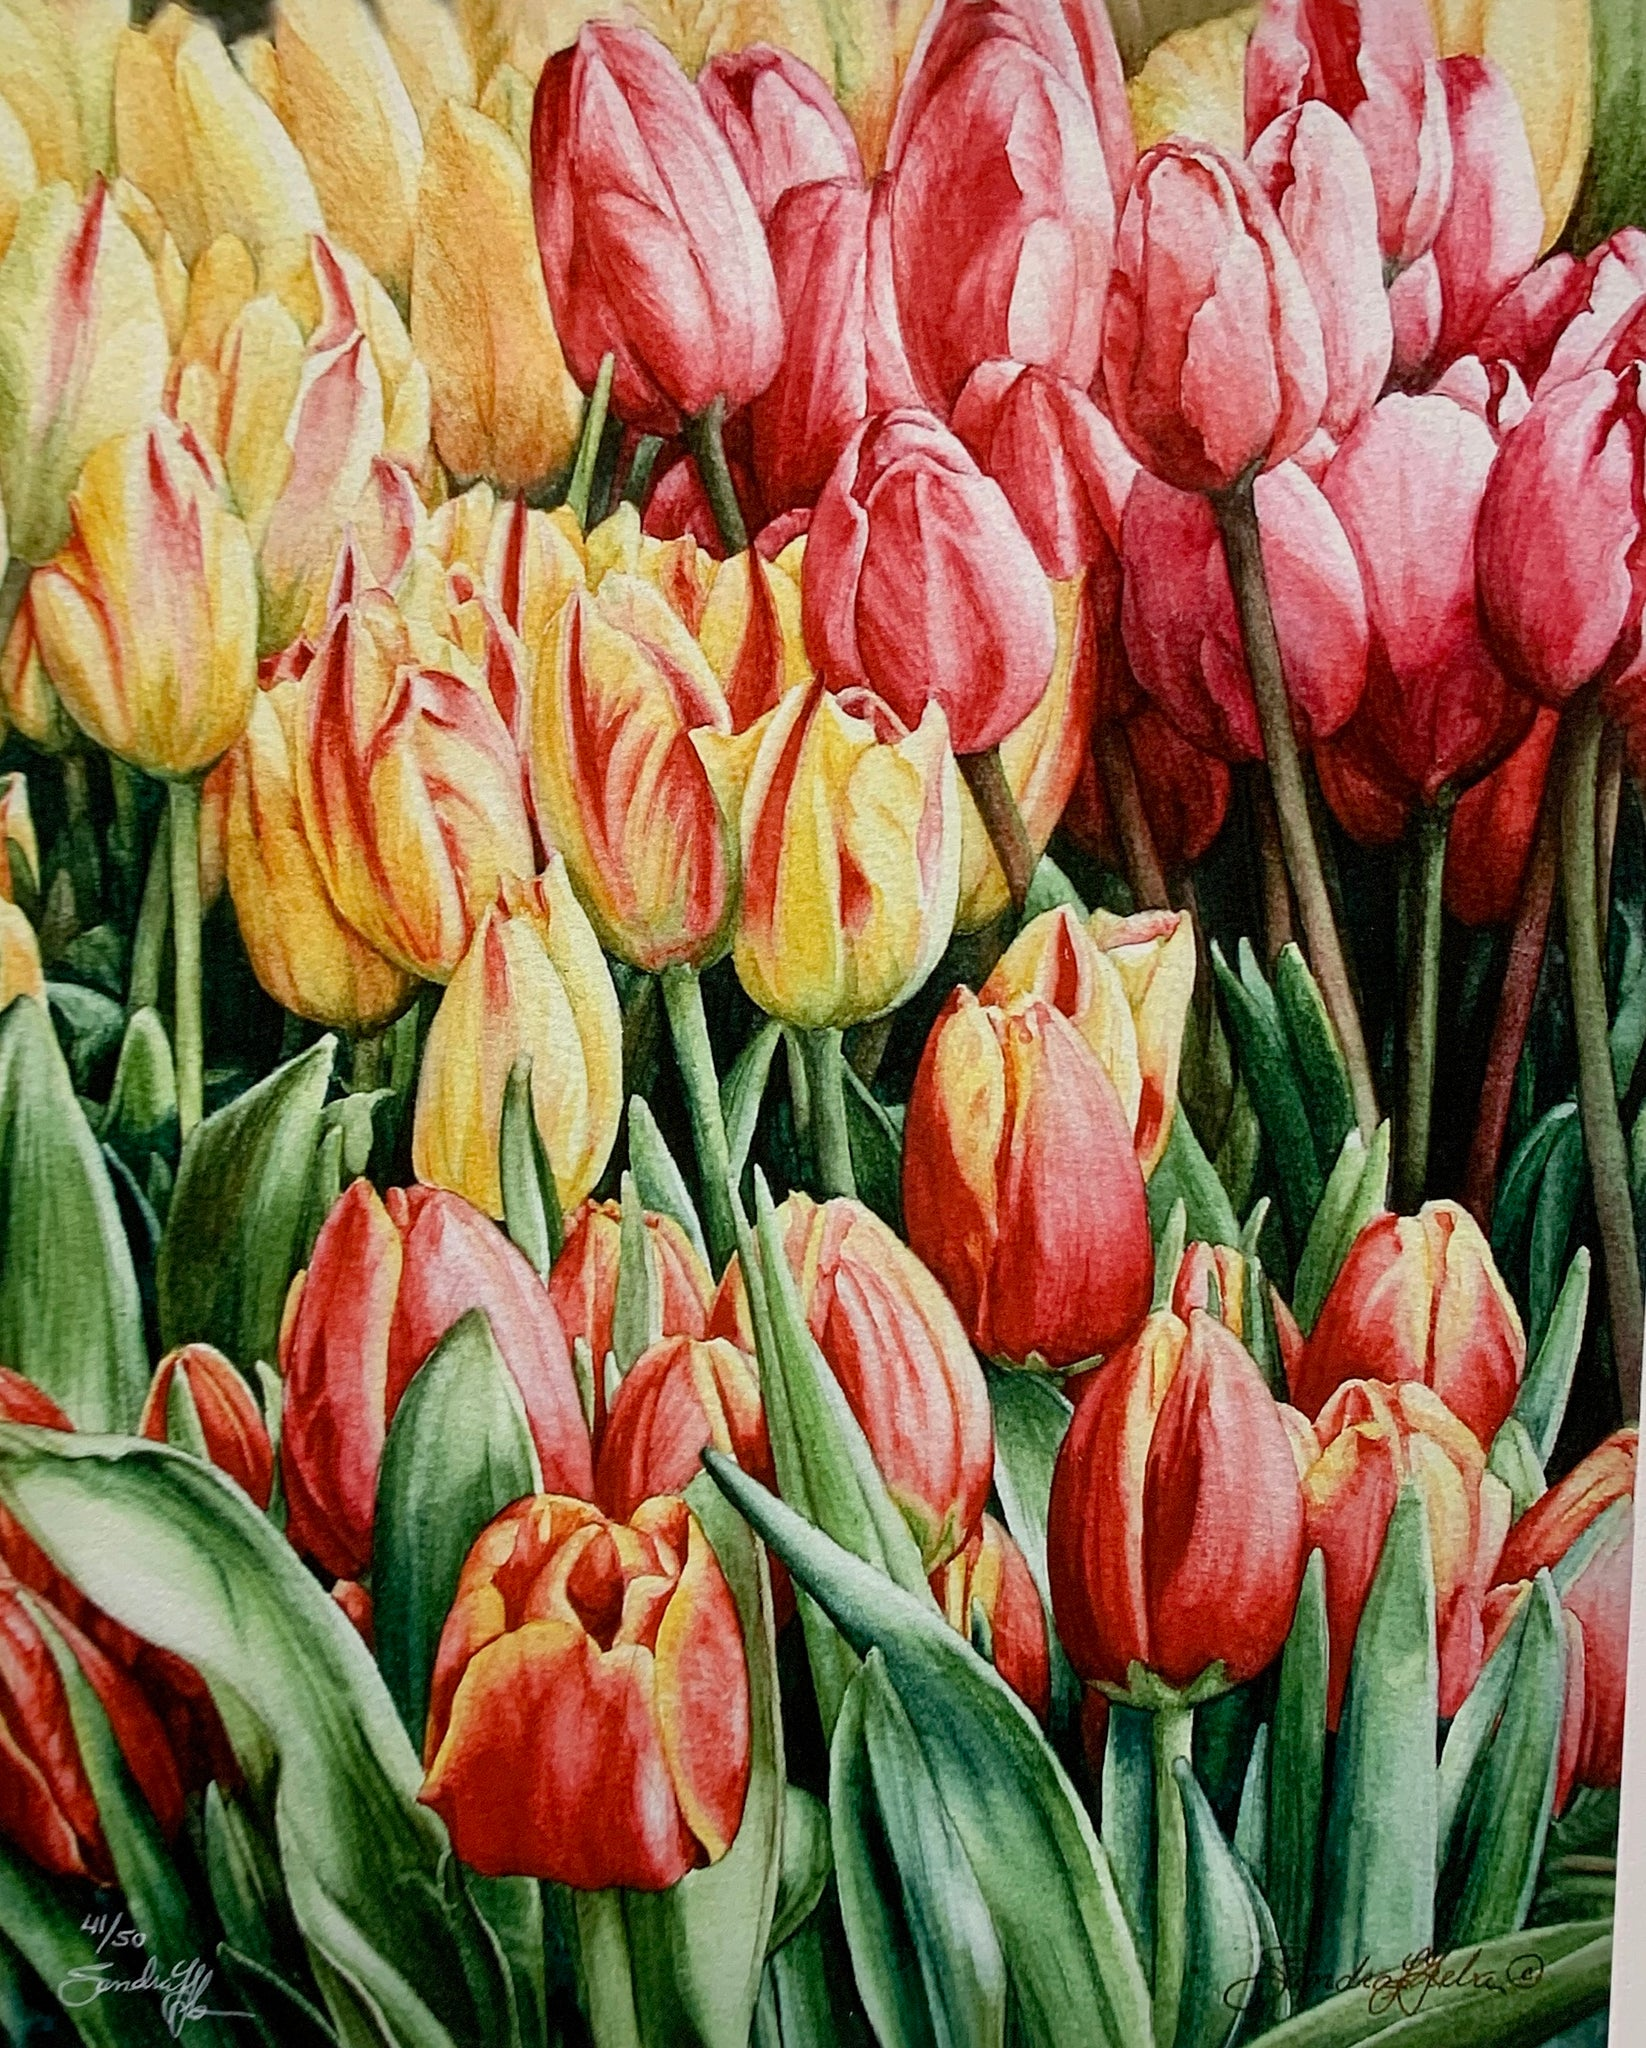 TULIPS IN WAITING